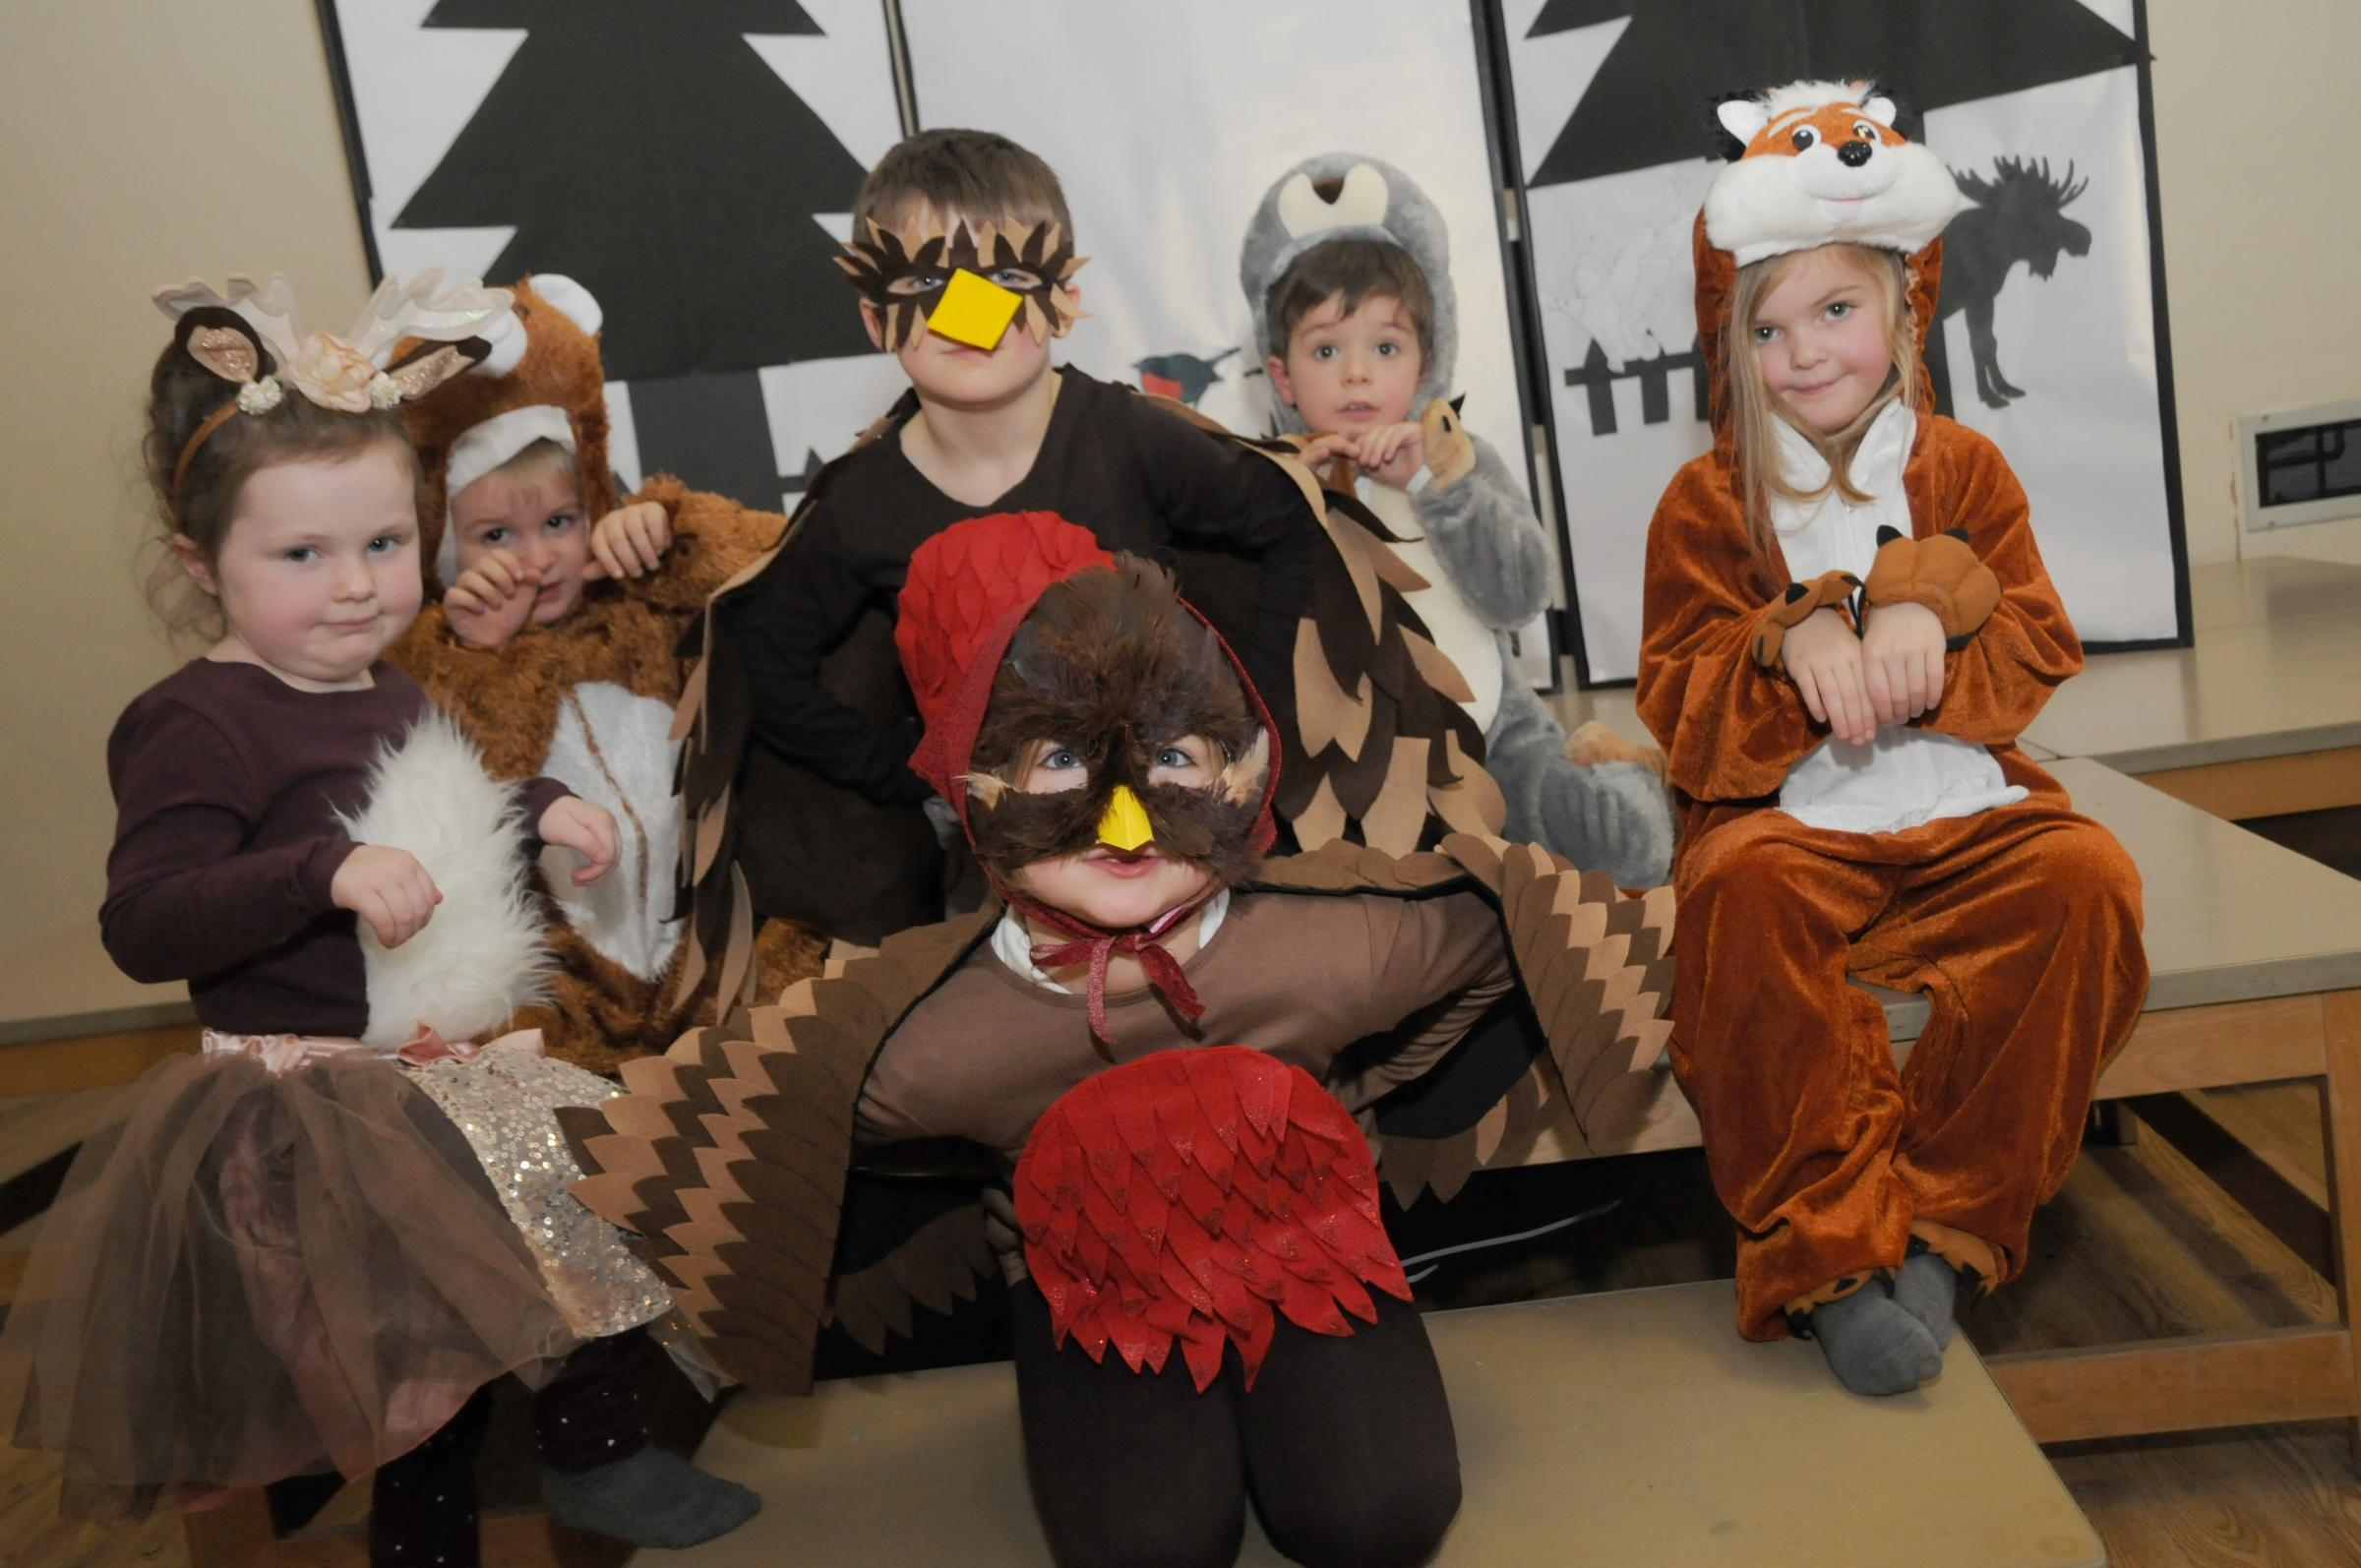 Left, Tilly Callaghan, Lewis Kirk, Monty Knott, Emma Reid, William Oakes and Zara Woods in costume for their Christmas play